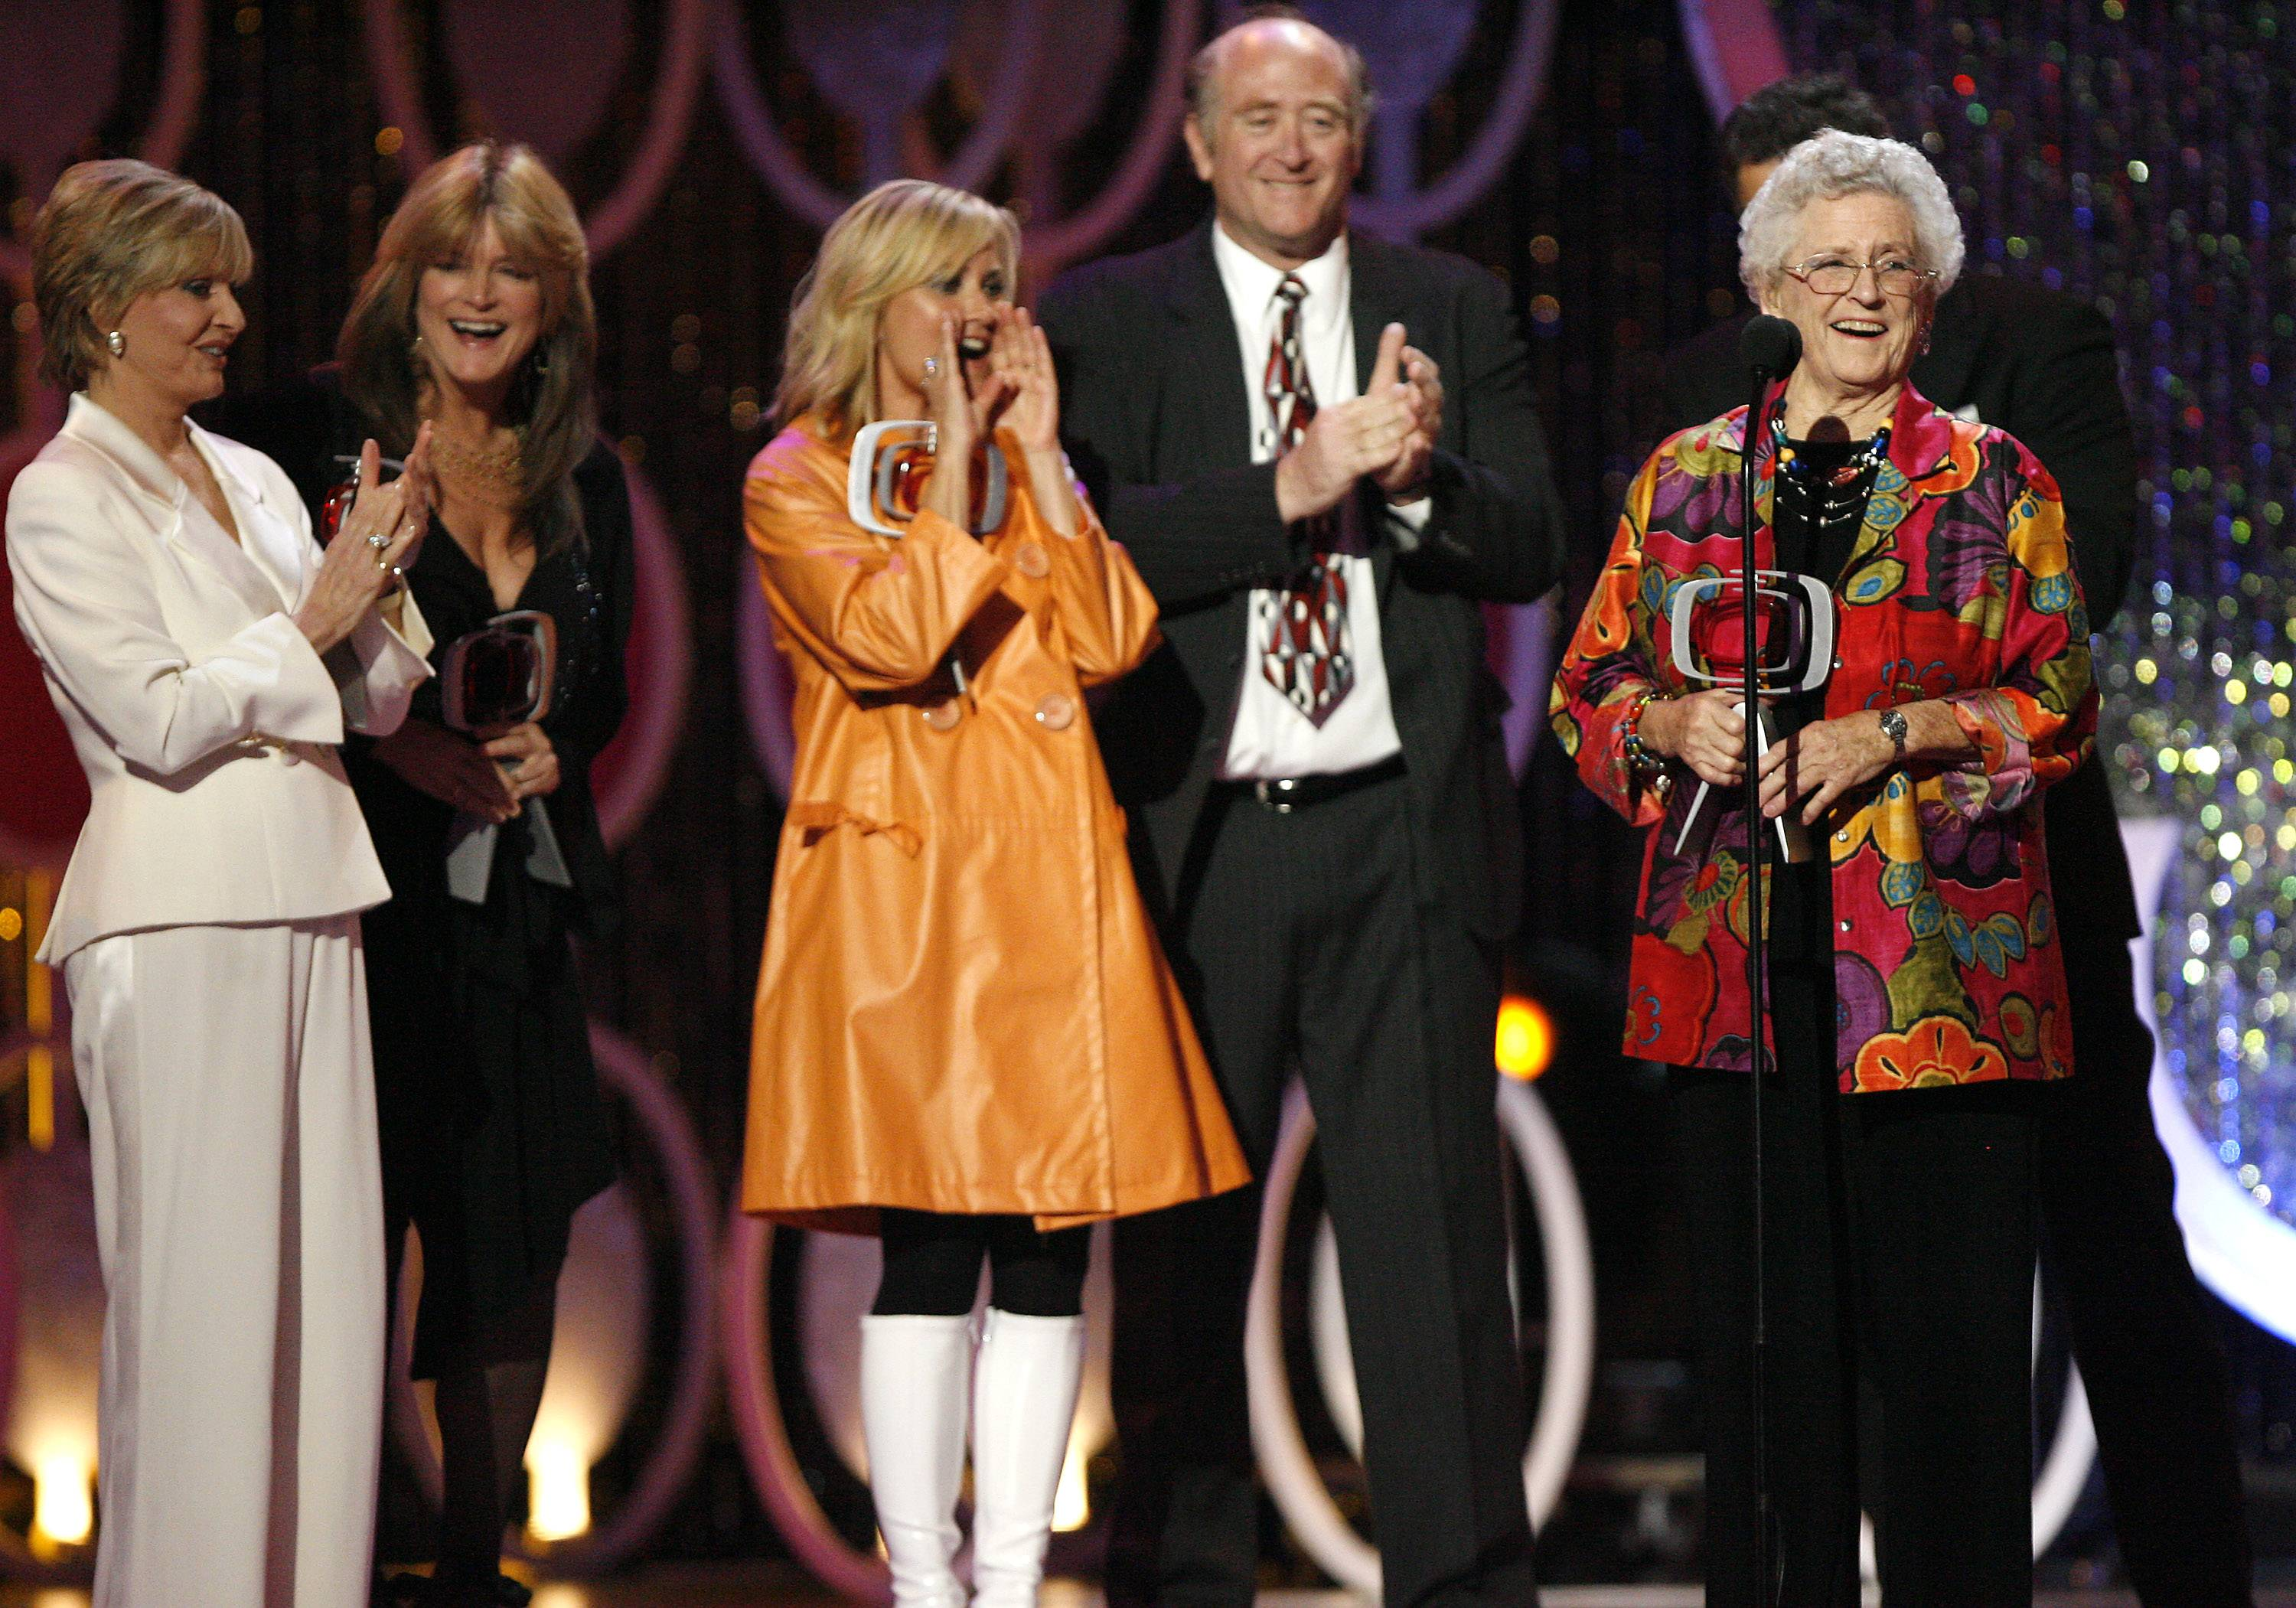 "Florence Henderson, from left, Susan Olsen, Maureen McCormick, Lloyd Schwartz and Ann B. Davis of the television show ""The Brandy Bunch"" accept the Pop Culture Award during the 5th Annual TV Land Awards in Santa Monica, Calif."